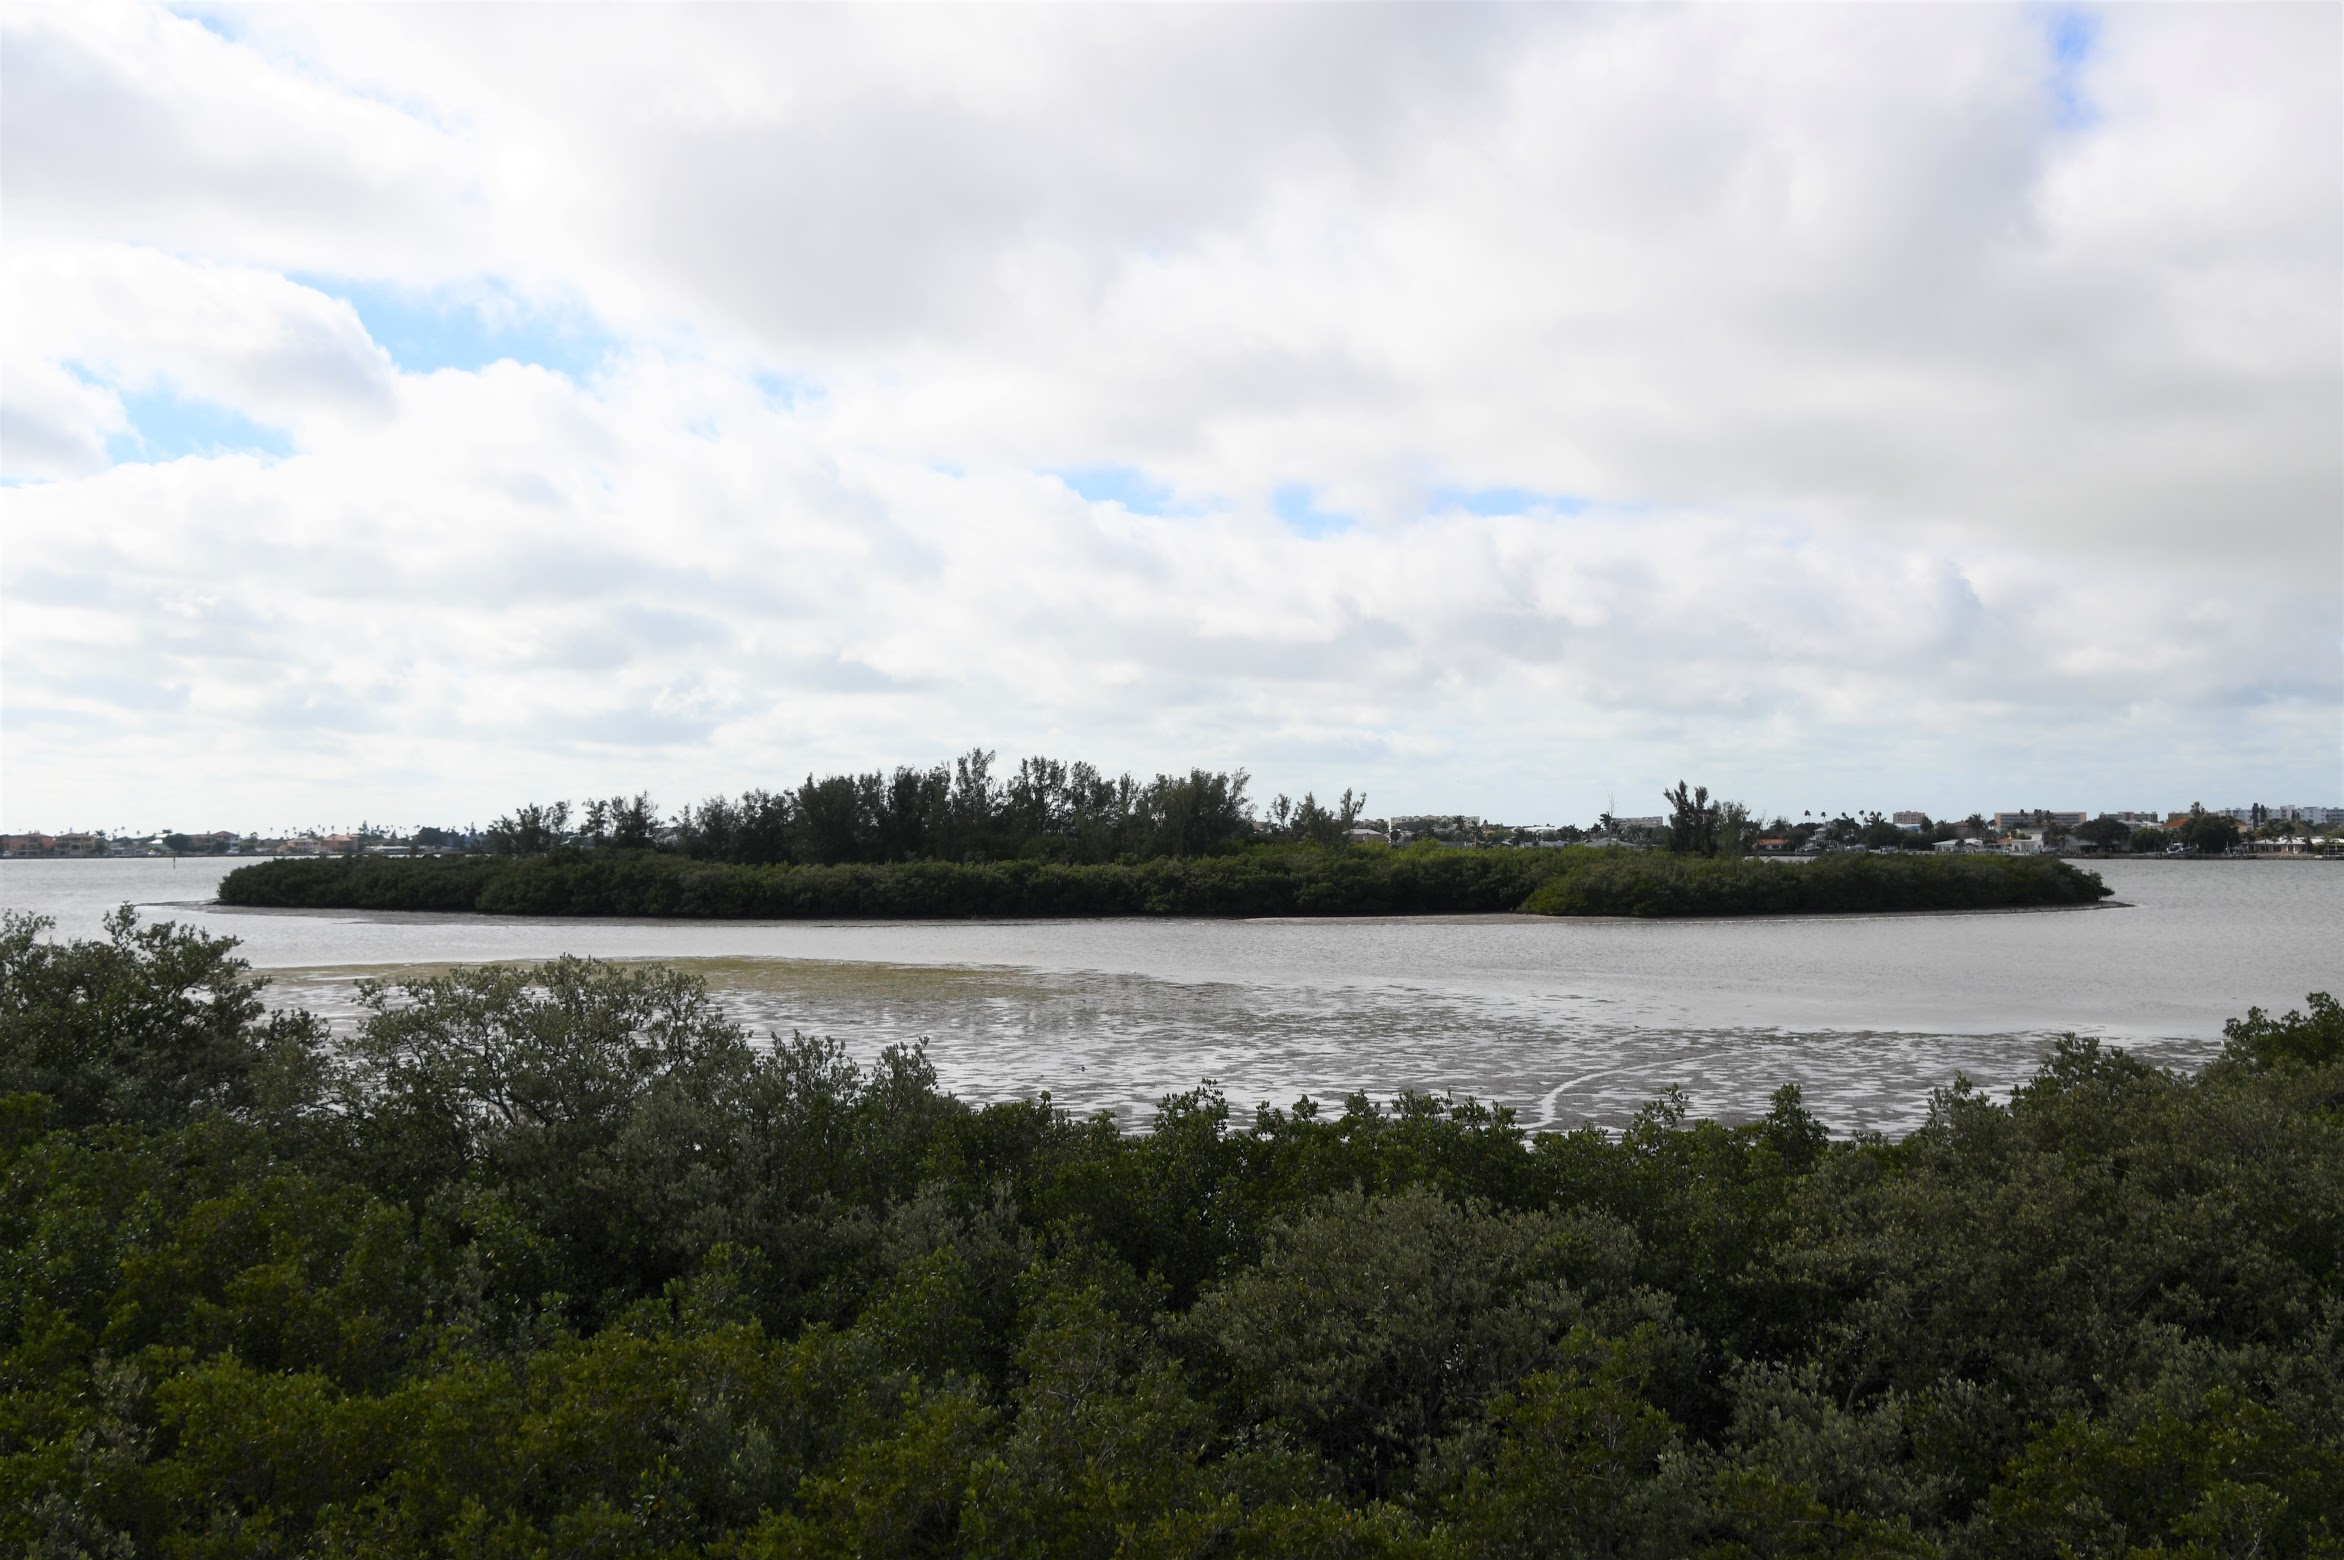 A small mangrove island just off the coast in a bay